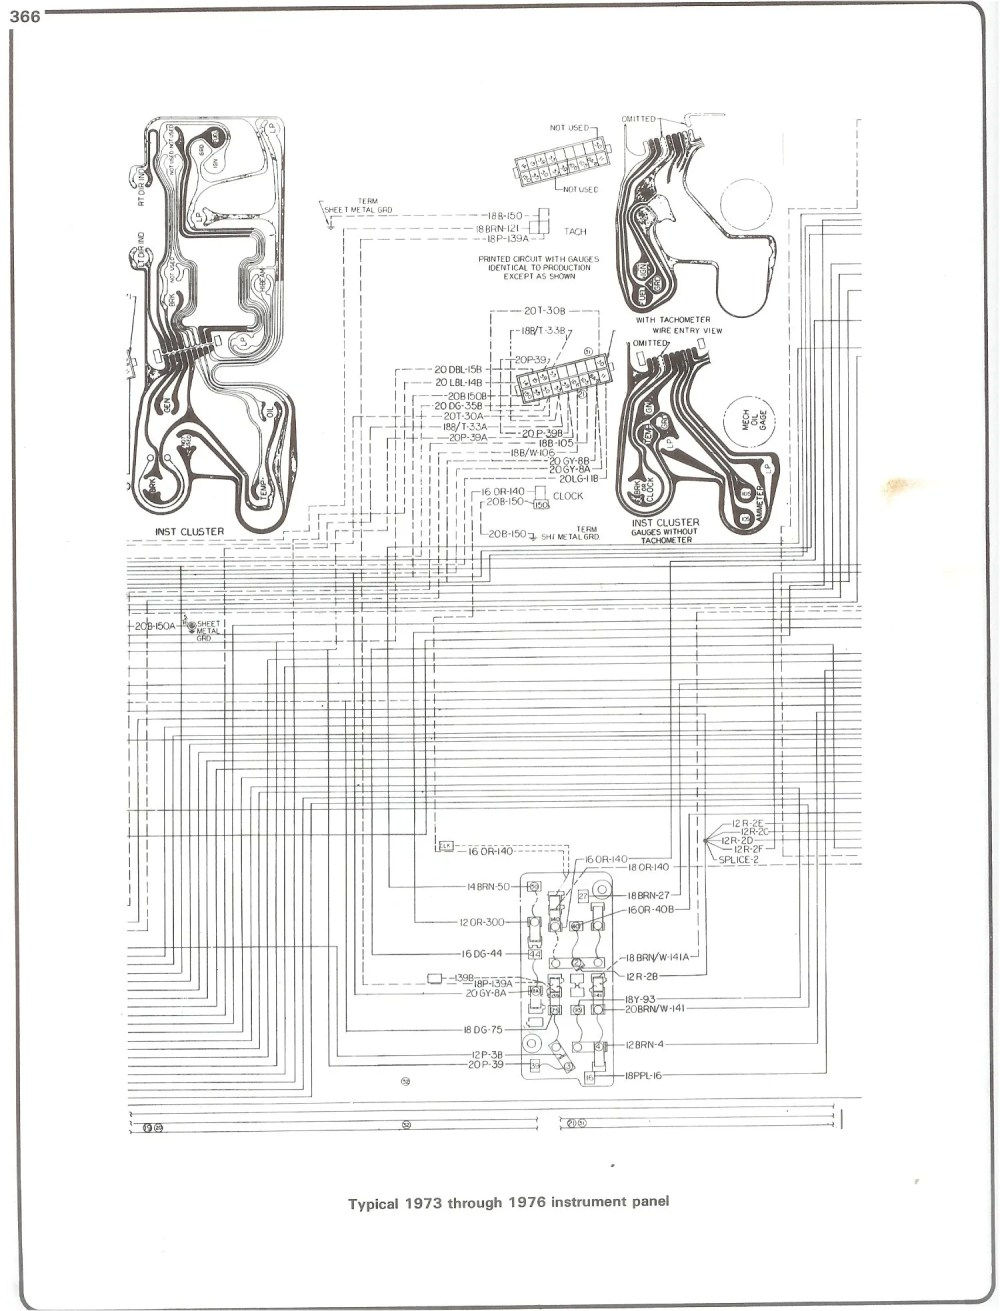 medium resolution of 1980 chevy luv wiring diagram wiring diagramcomplete 73 87 wiring diagrams1980 chevy luv wiring diagram 16